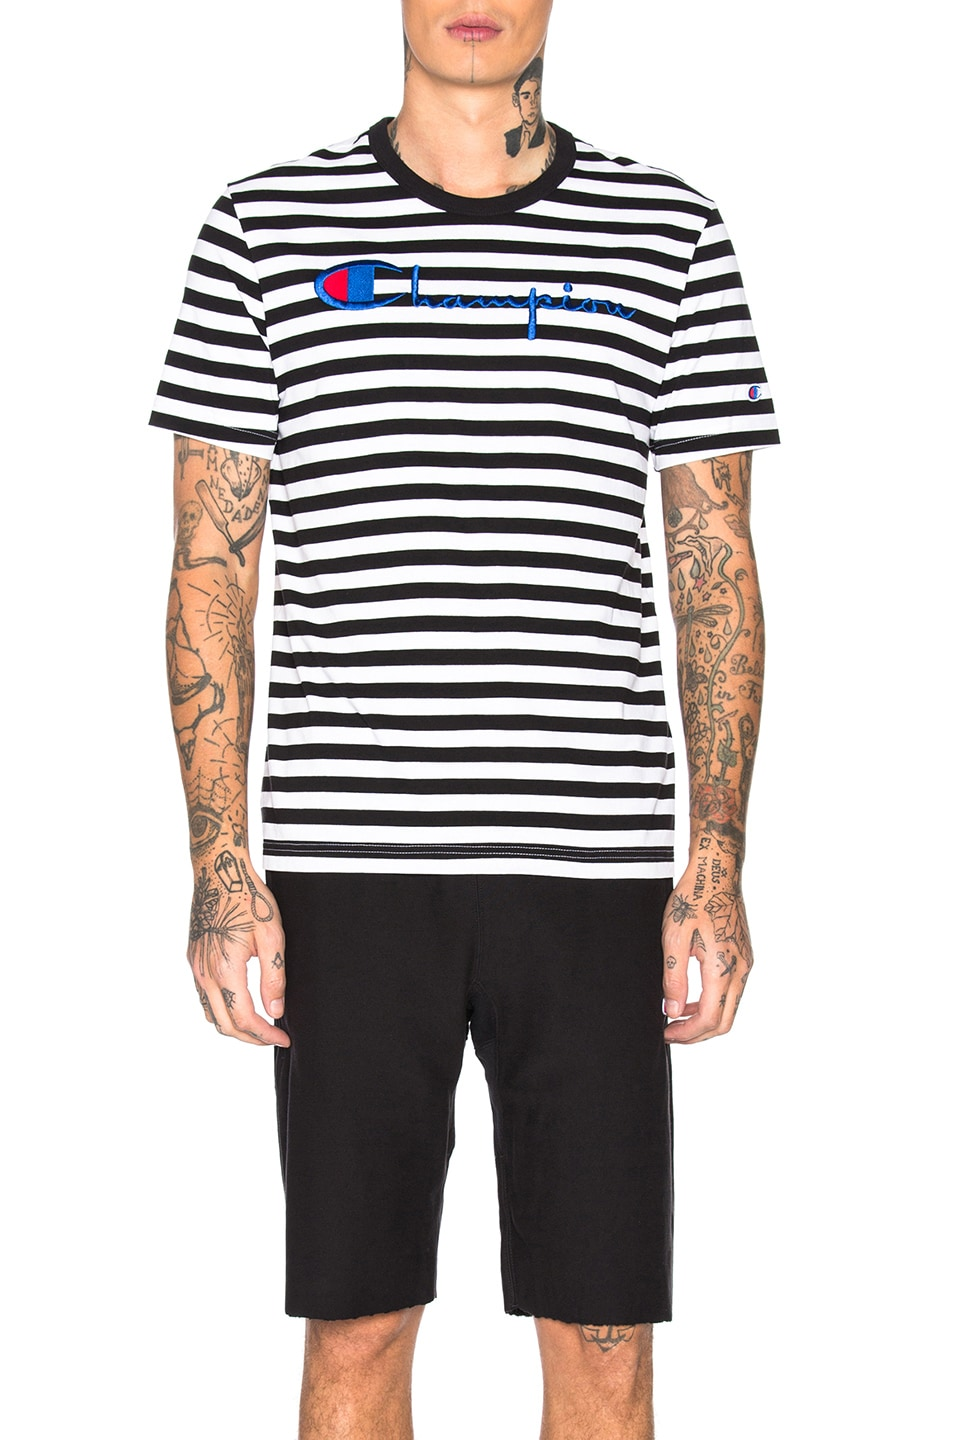 Image 1 of Champion Reverse Weave Champion Crewneck Striped Logo Tee in Black & White